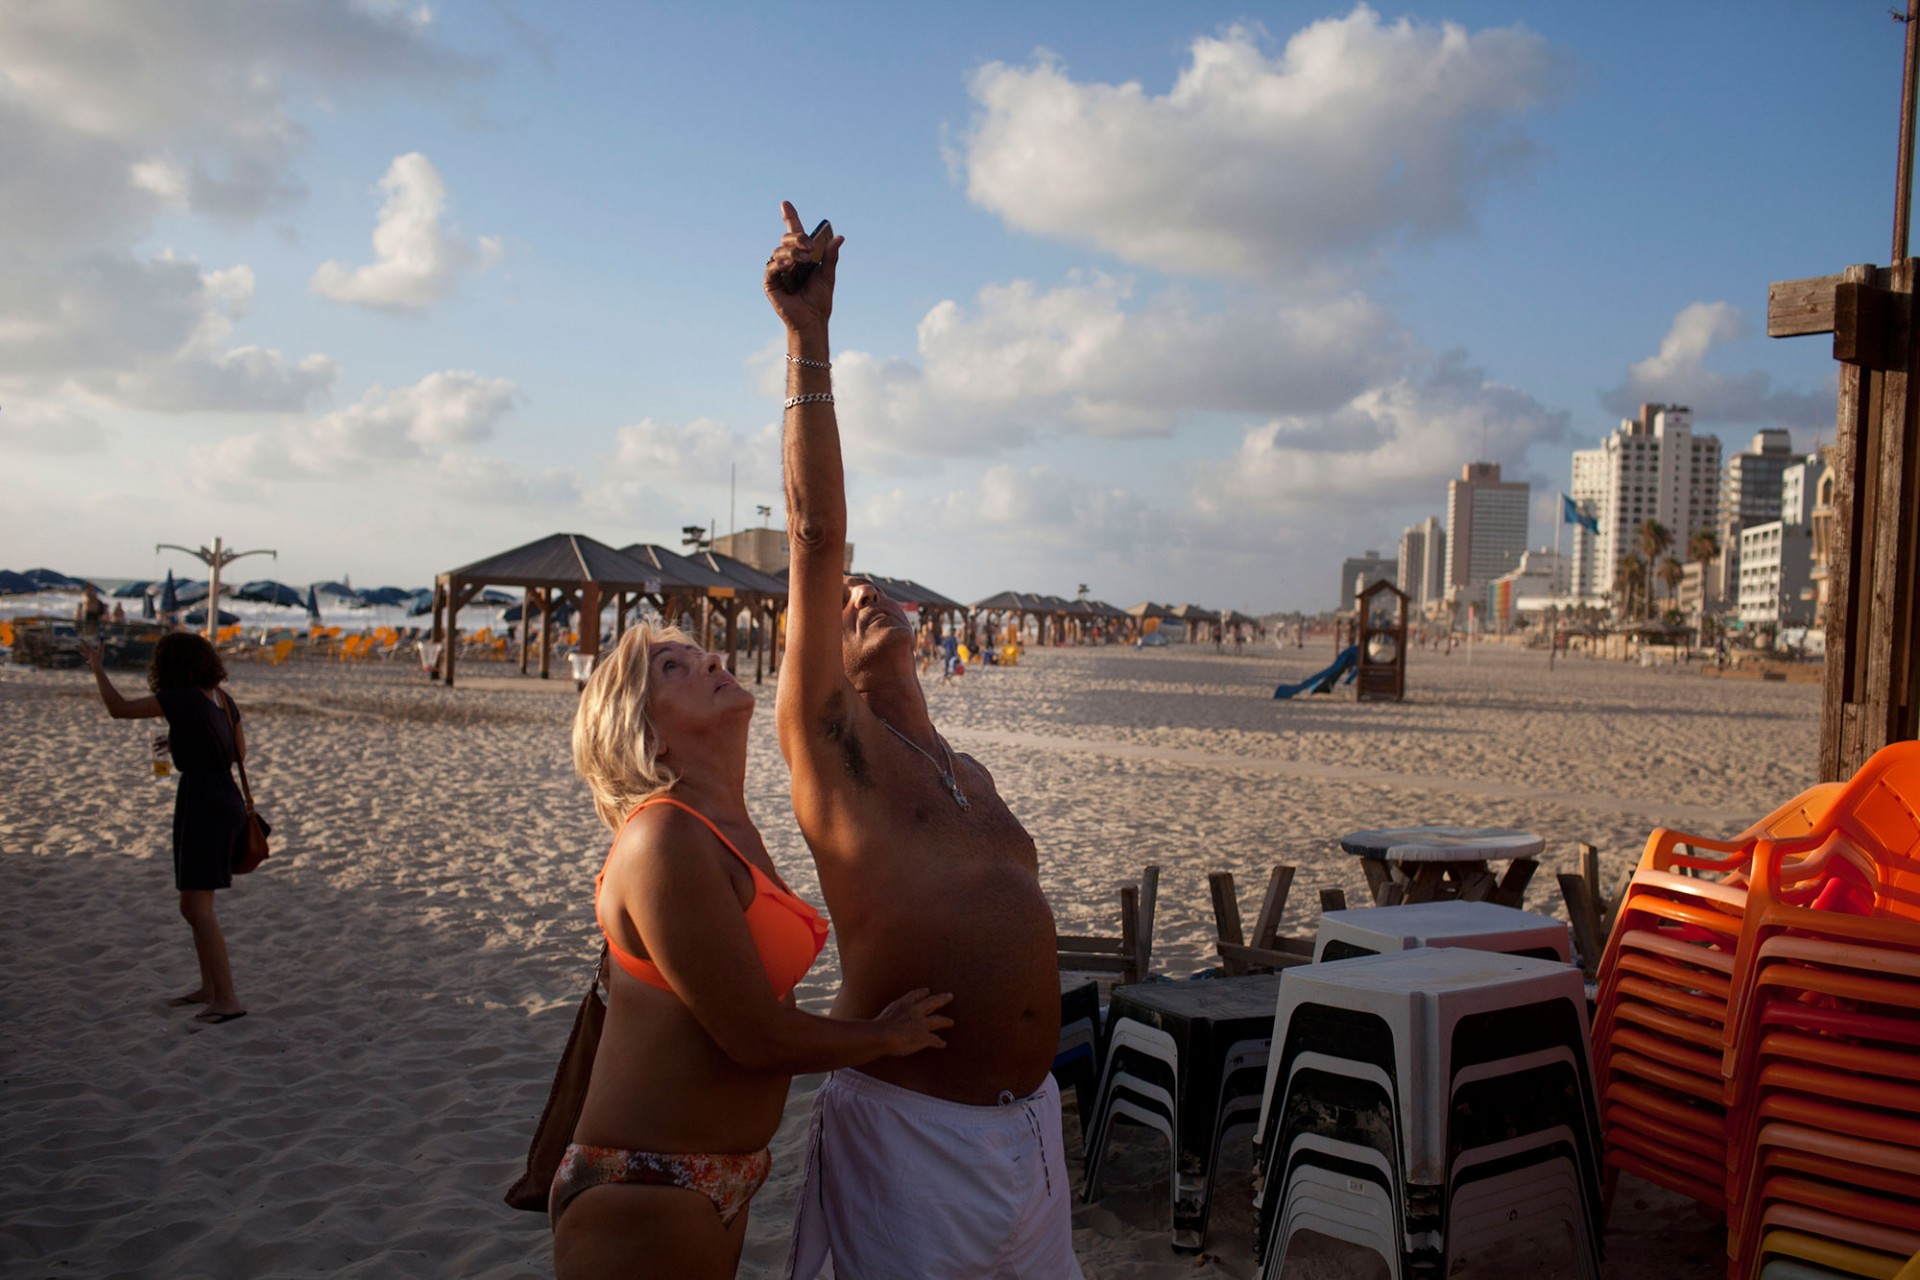 Israelis and tourists watch the sky on the beach during a rocket attack fired by Palestinian militants from the Gaza Strip on July 15, 2014 in Tel Aviv, Israel.